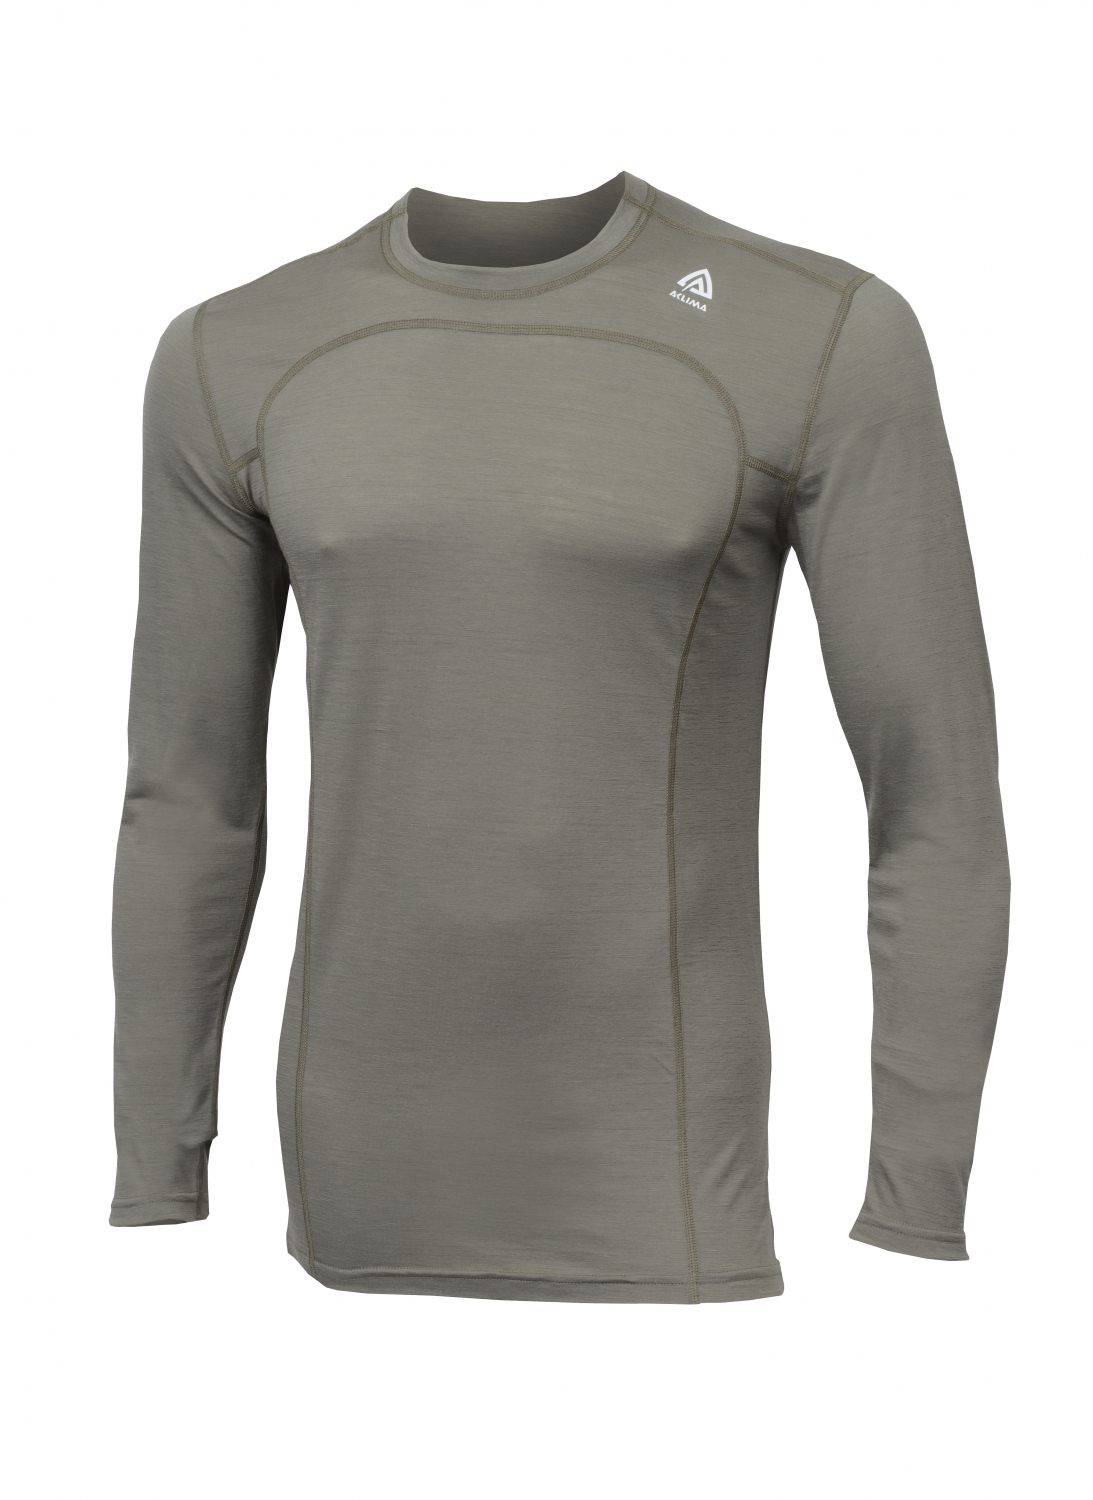 Aclima LightWool Crew Neck Ranger Green S thumbnail